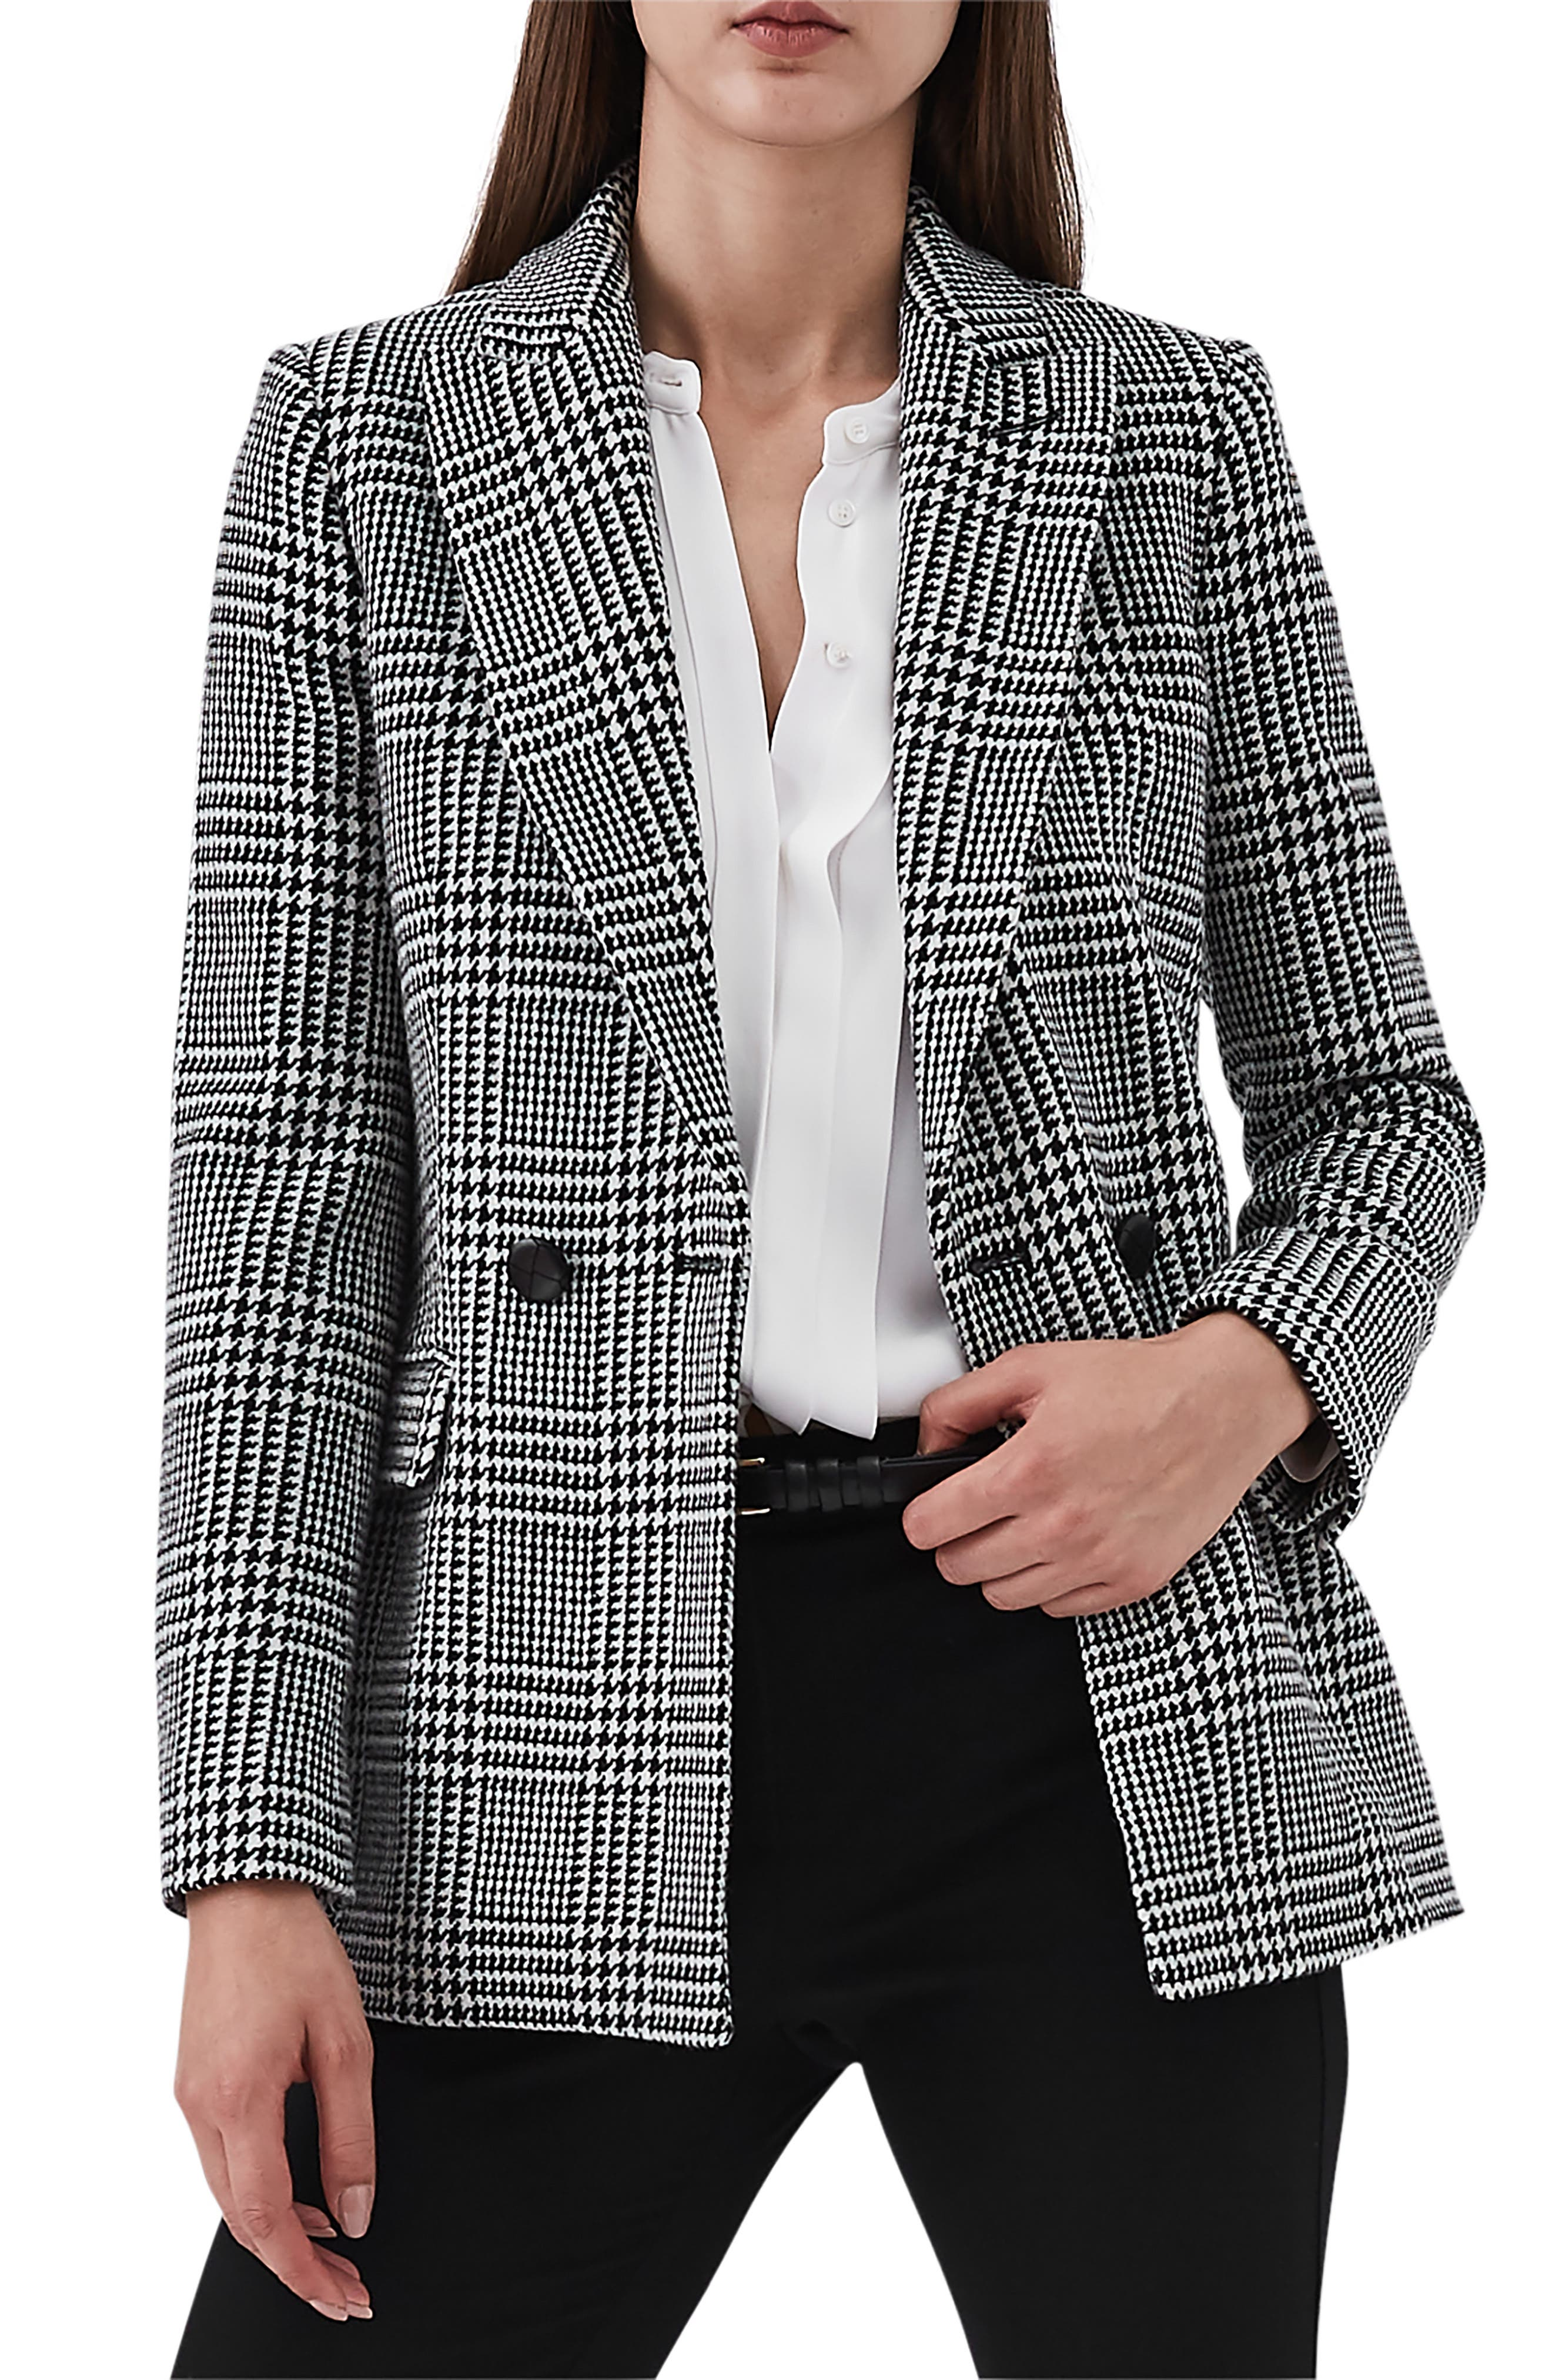 REISS Langley Houndstooth Wool Blend Jacket in Black/ White